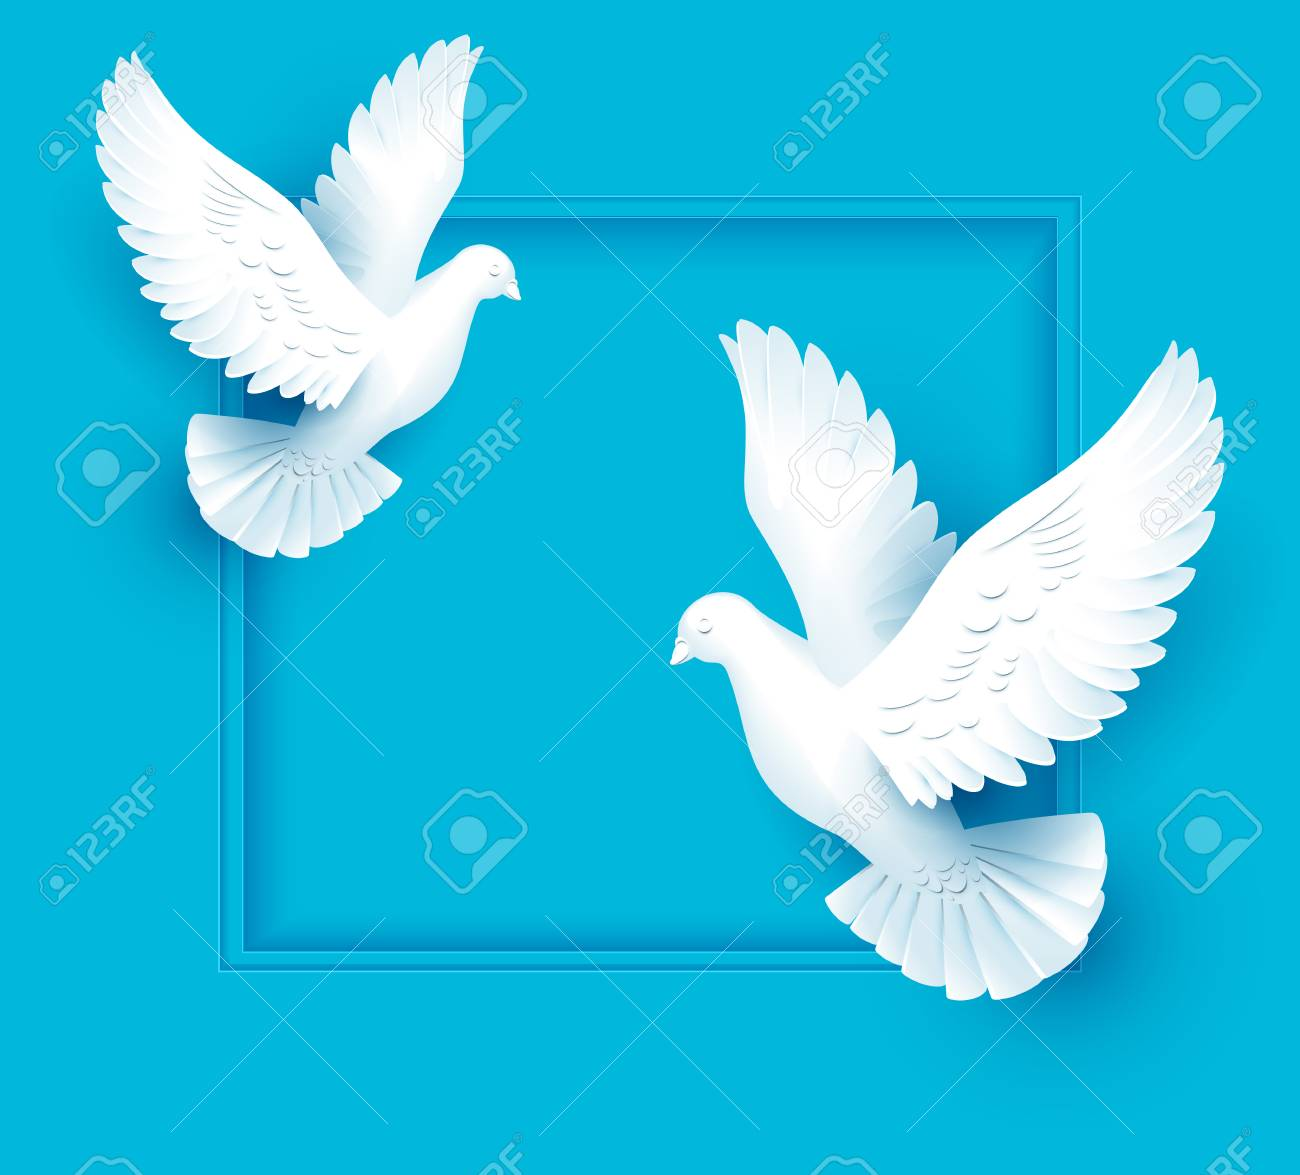 Two white dove fly on blue background. Template vector illustration greeting card. - 83574065